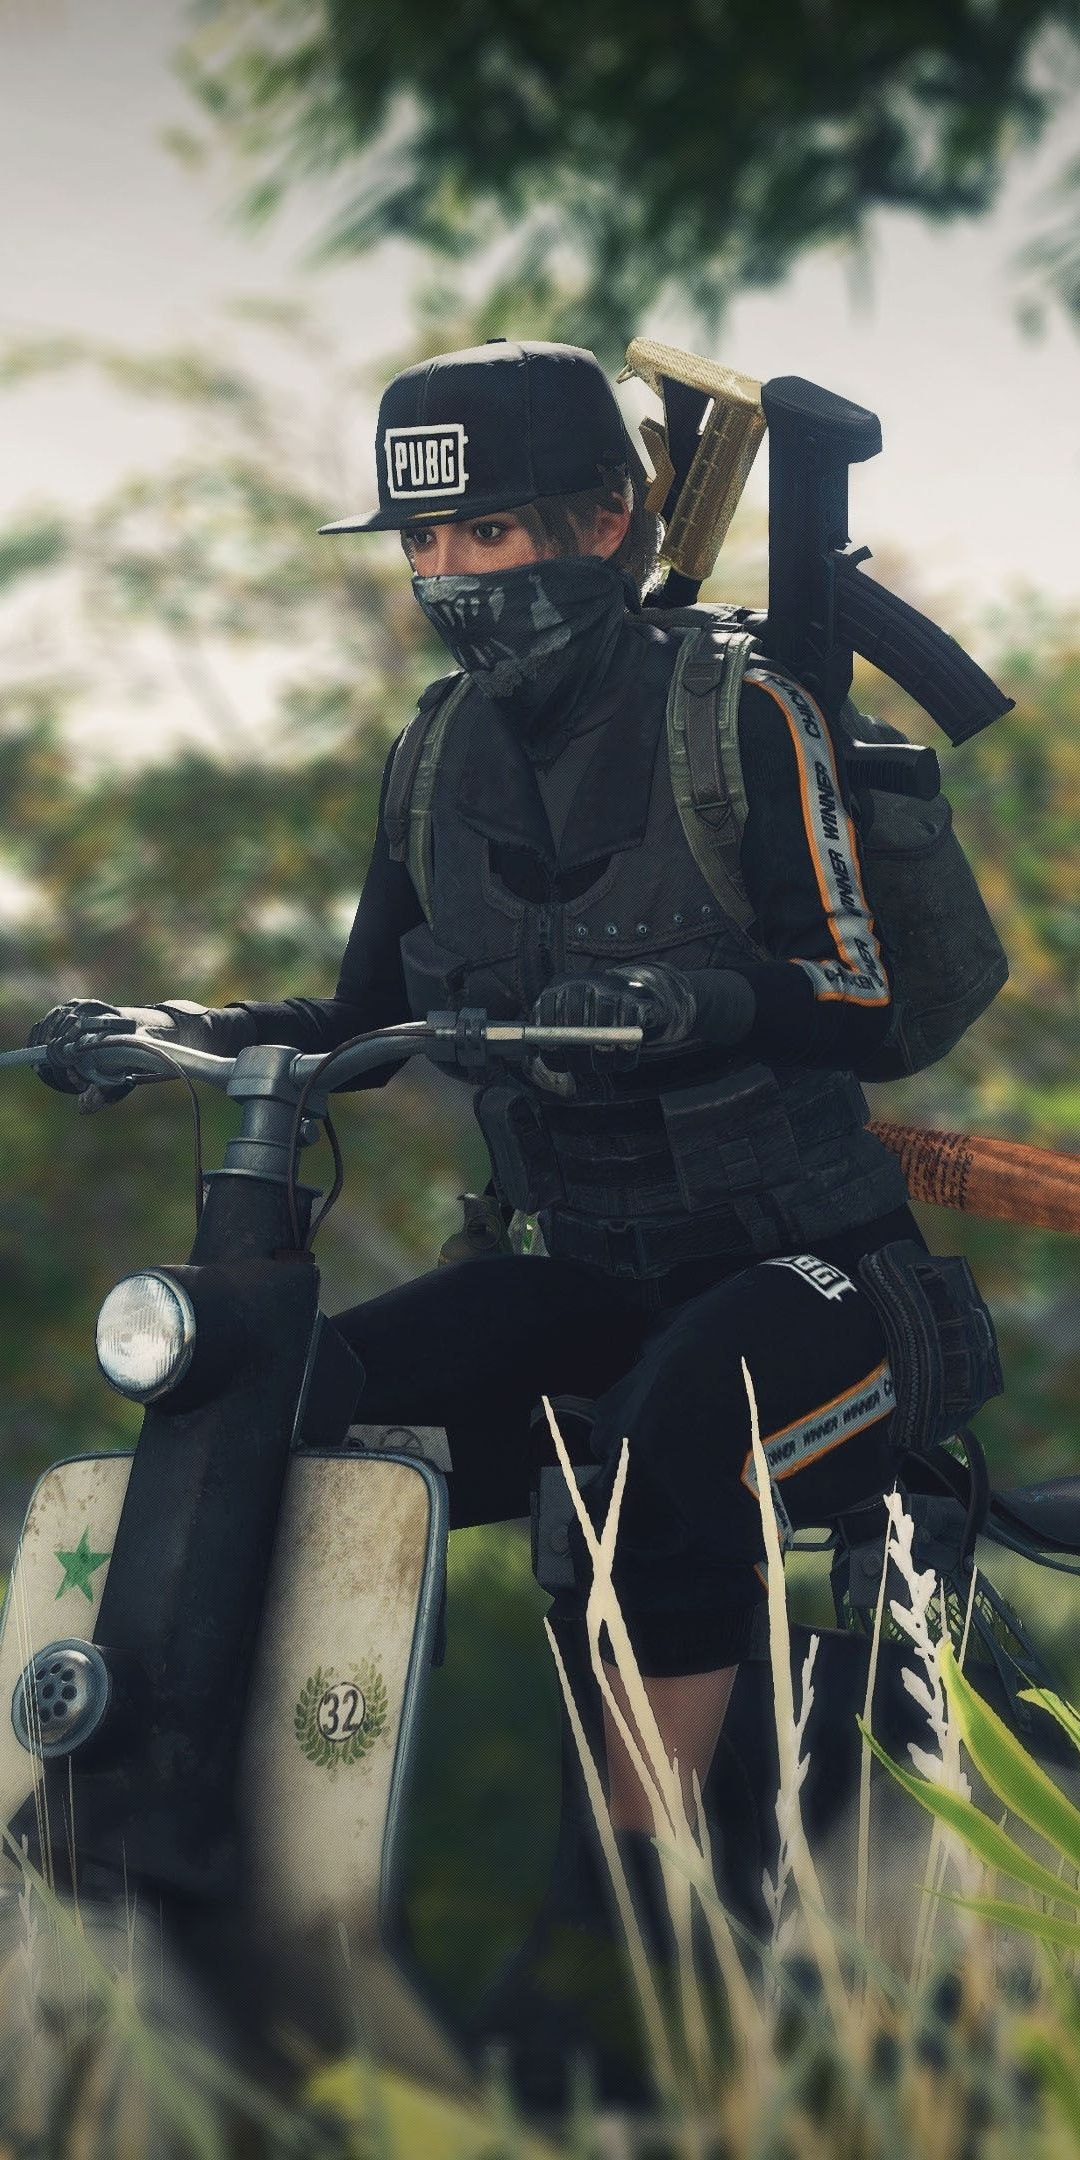 PUBG, video game, girl on scooter, 1080x2160 wallpaper